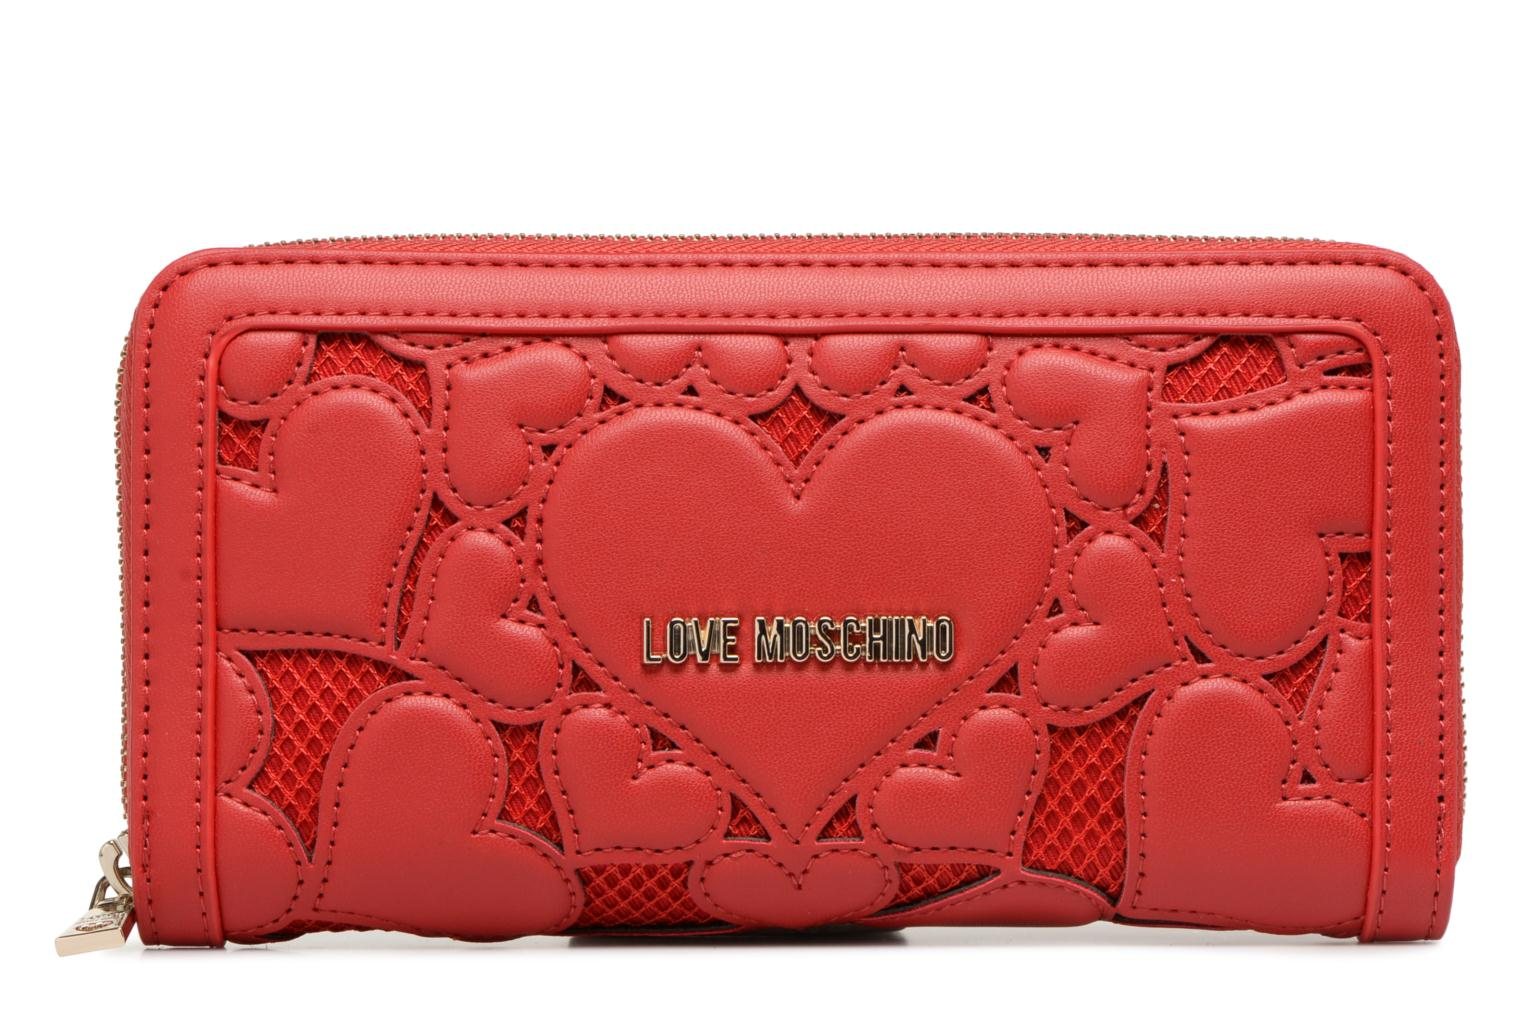 Portefeuille rouge Love avec fantaisie 50A Moschino empiècements 5BxqwR7